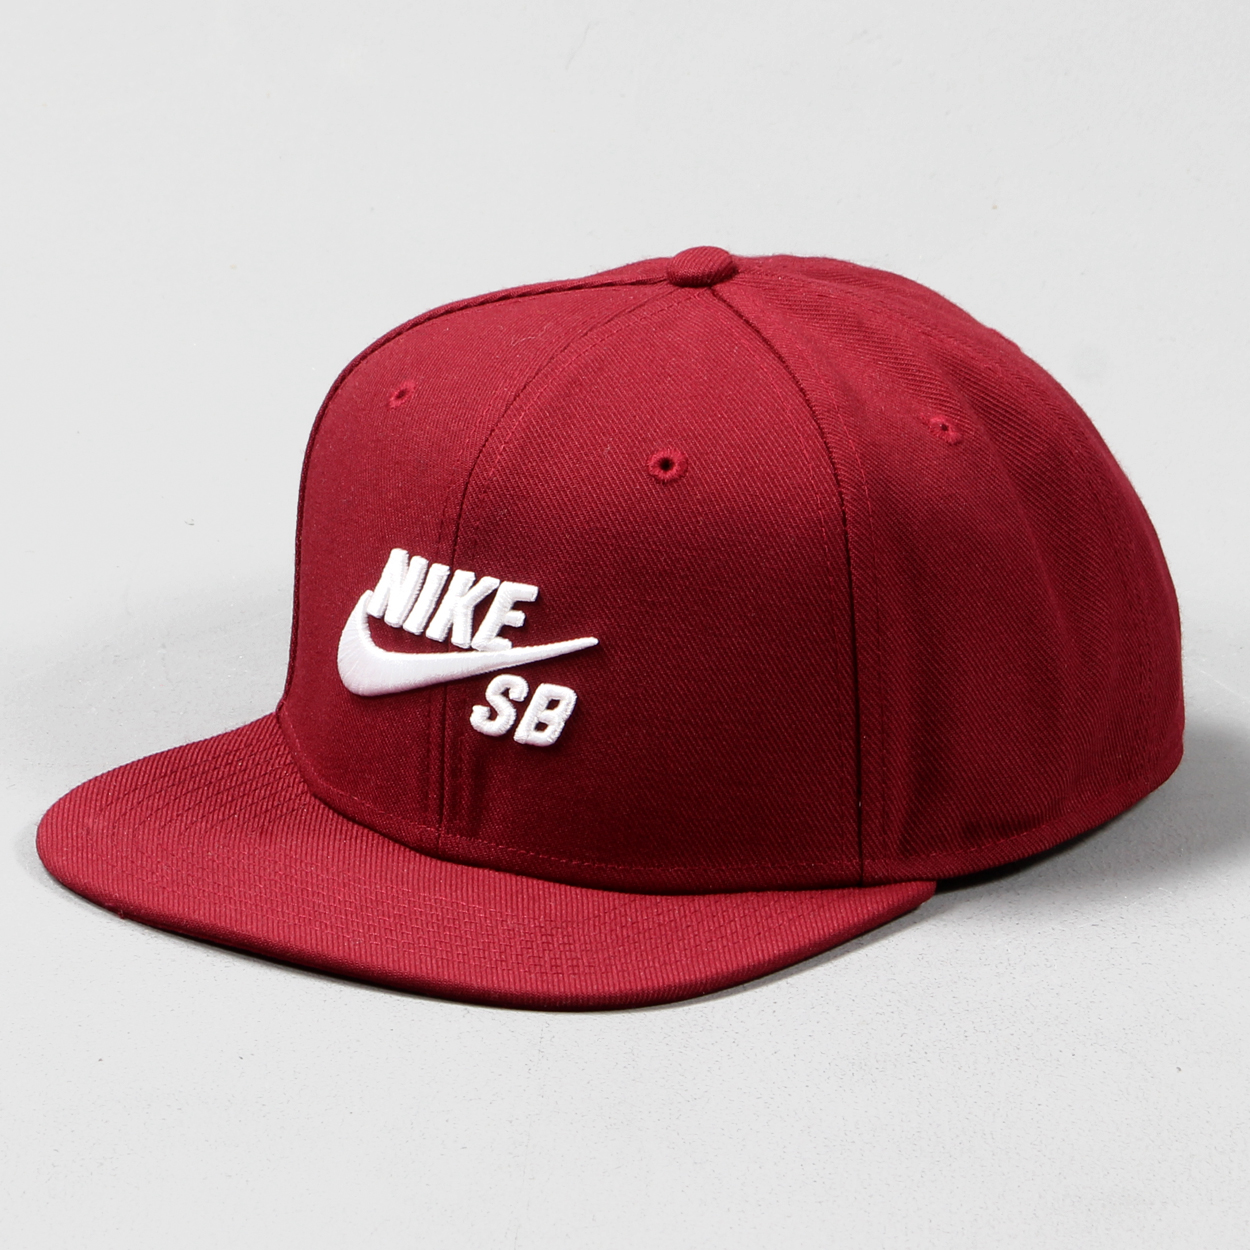 Nike SB Icon Pro Snapback Adjustable Cap Hat Team Red White £21.00 807ead738811